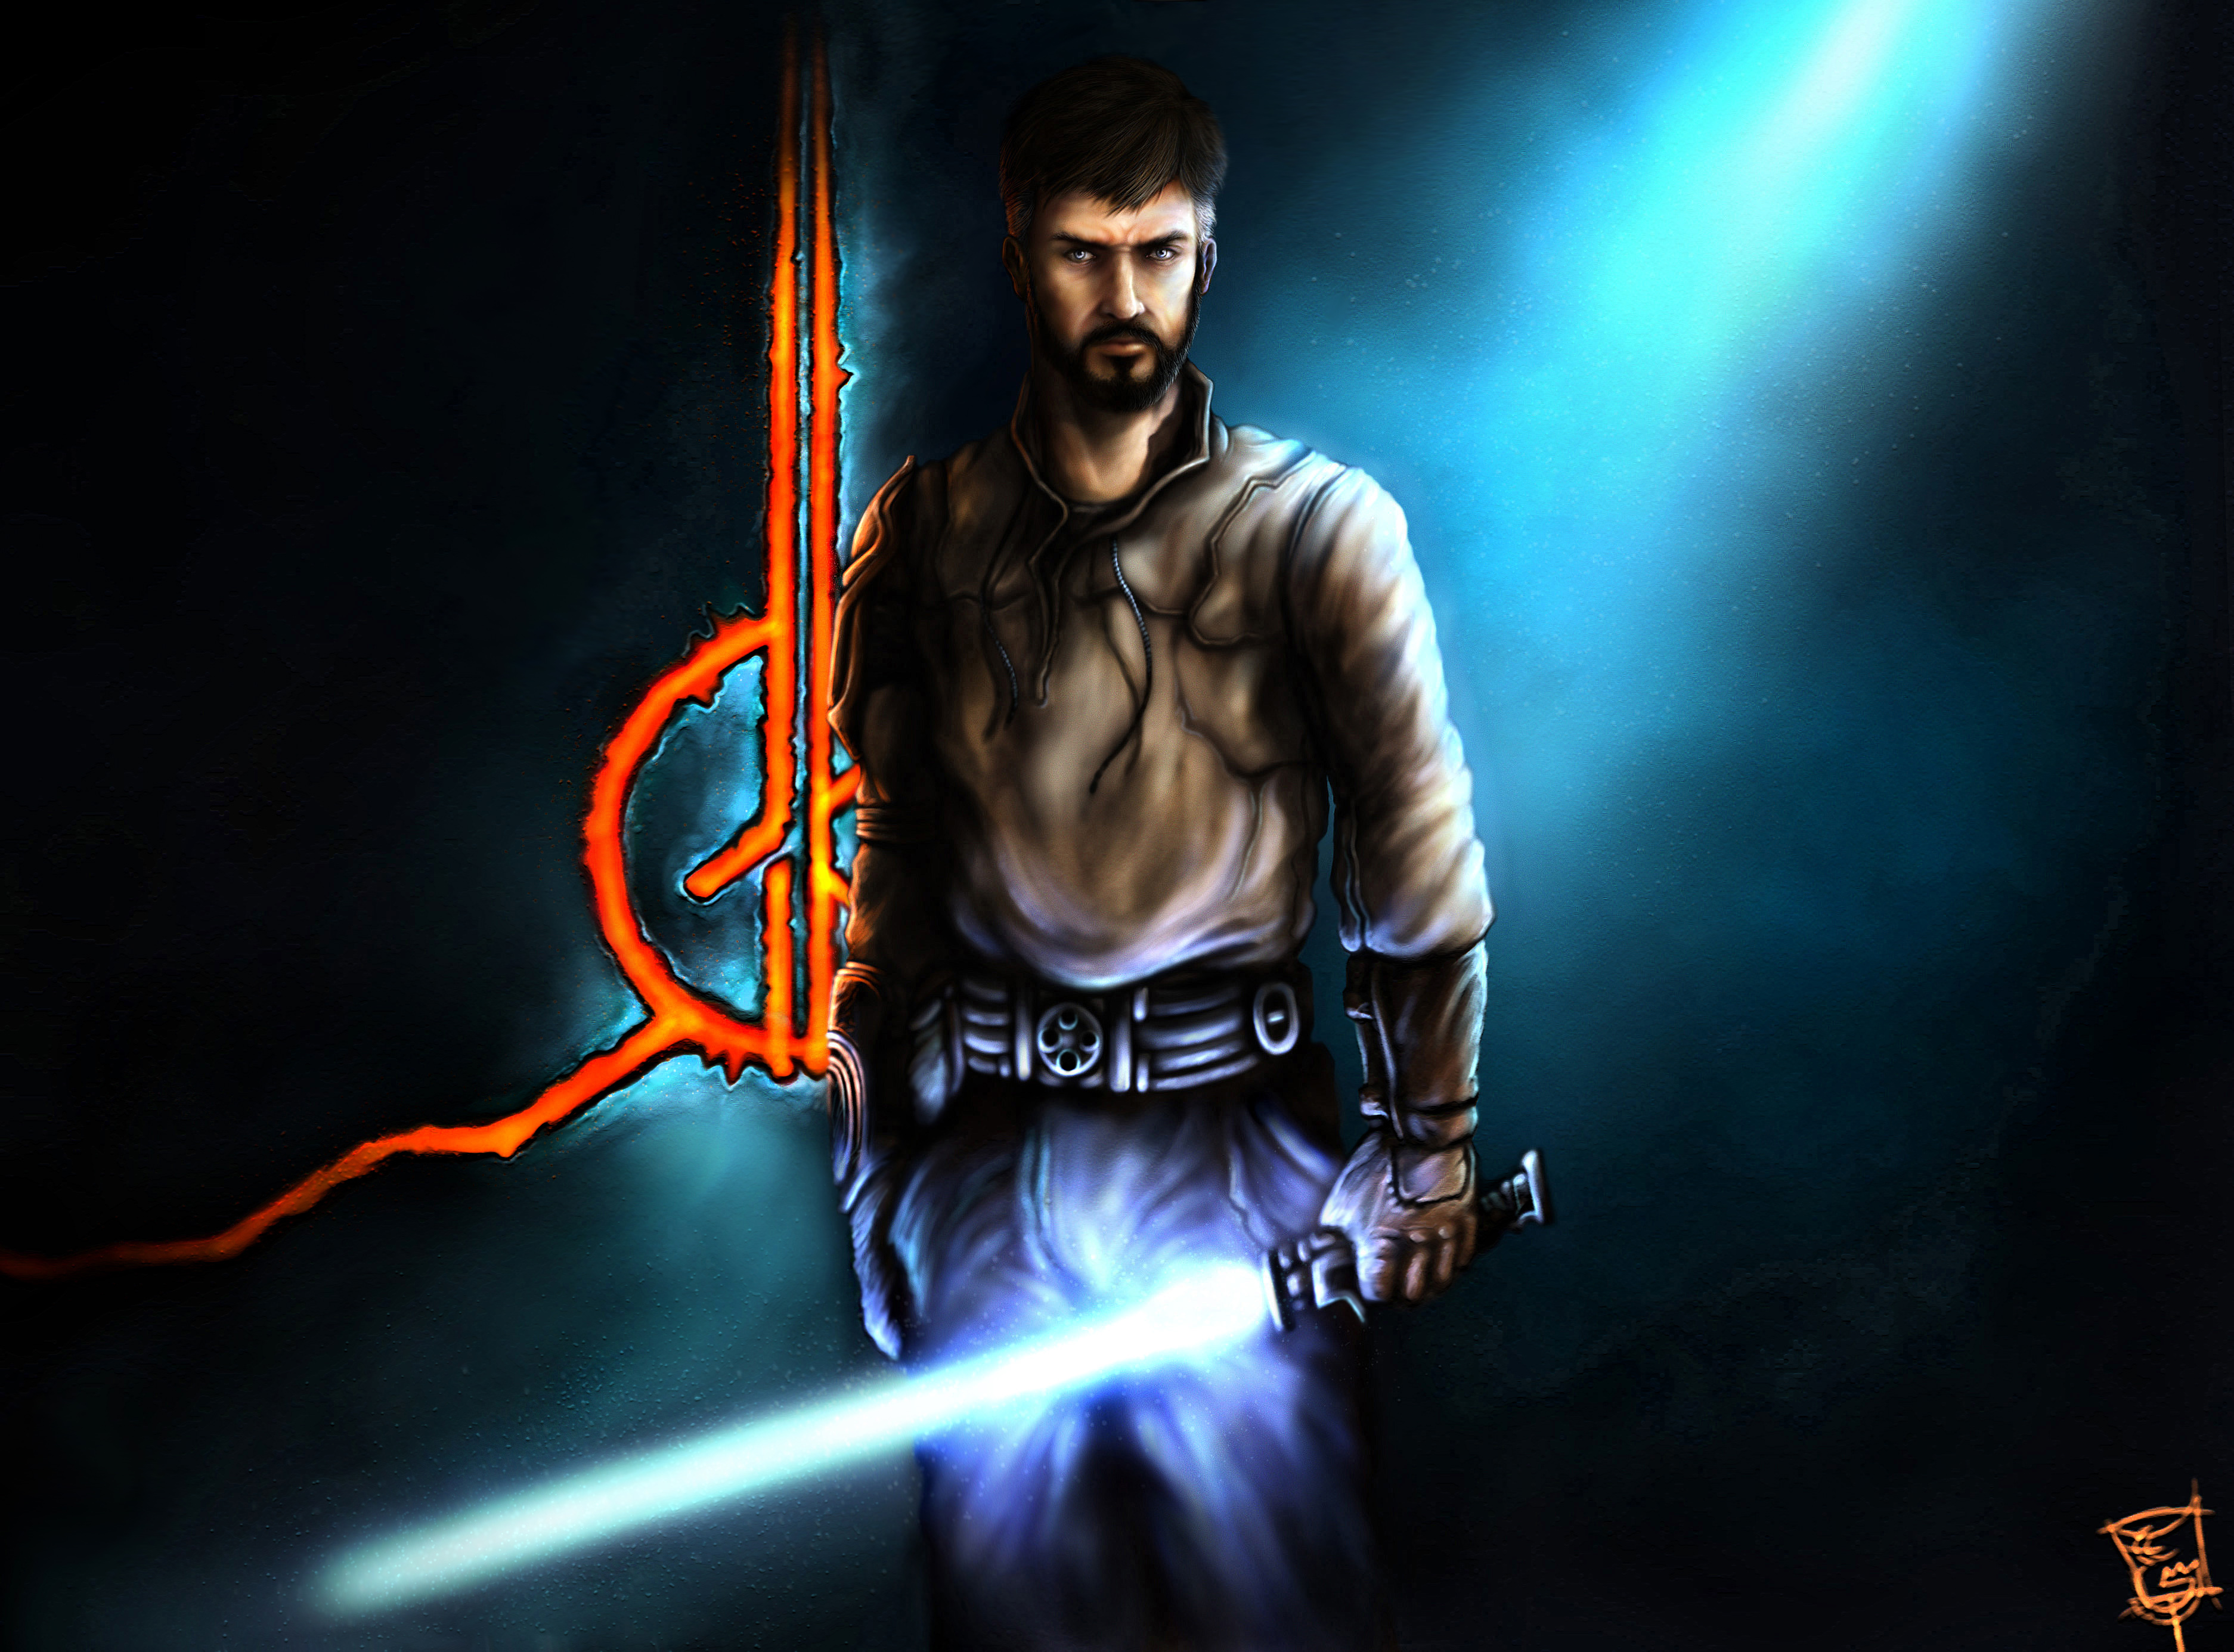 Jedi Knight Kyle Katarn By Thegameworld On Deviantart